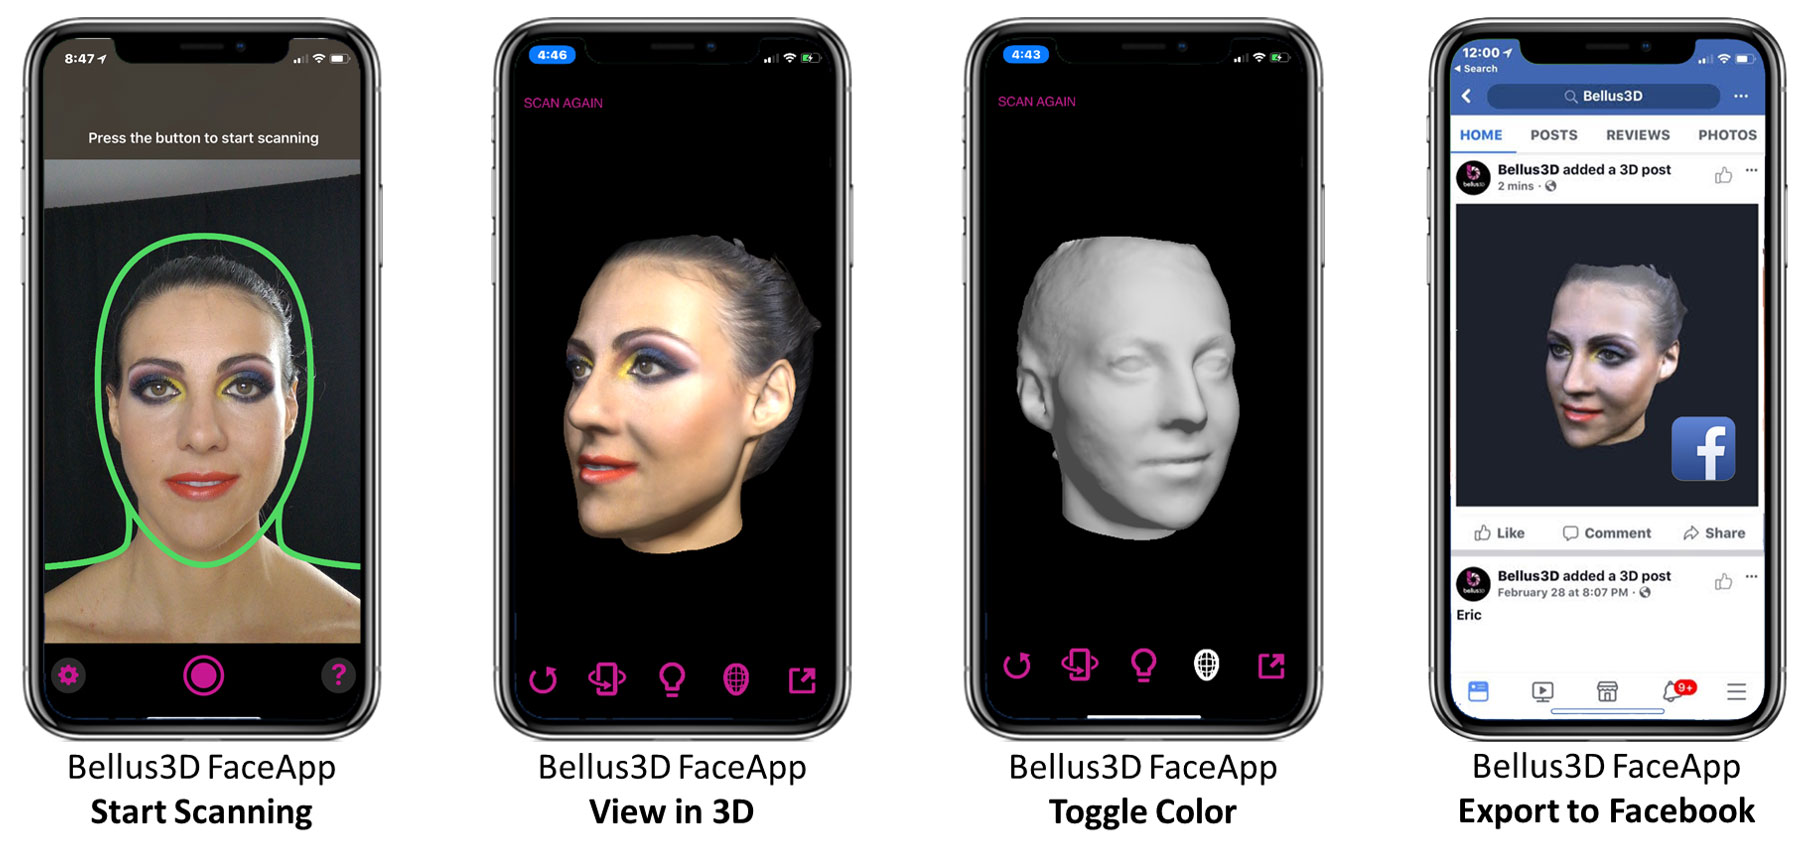 Bellus3D uses the iPhone X's TrueDepth camera to 3D scan your face